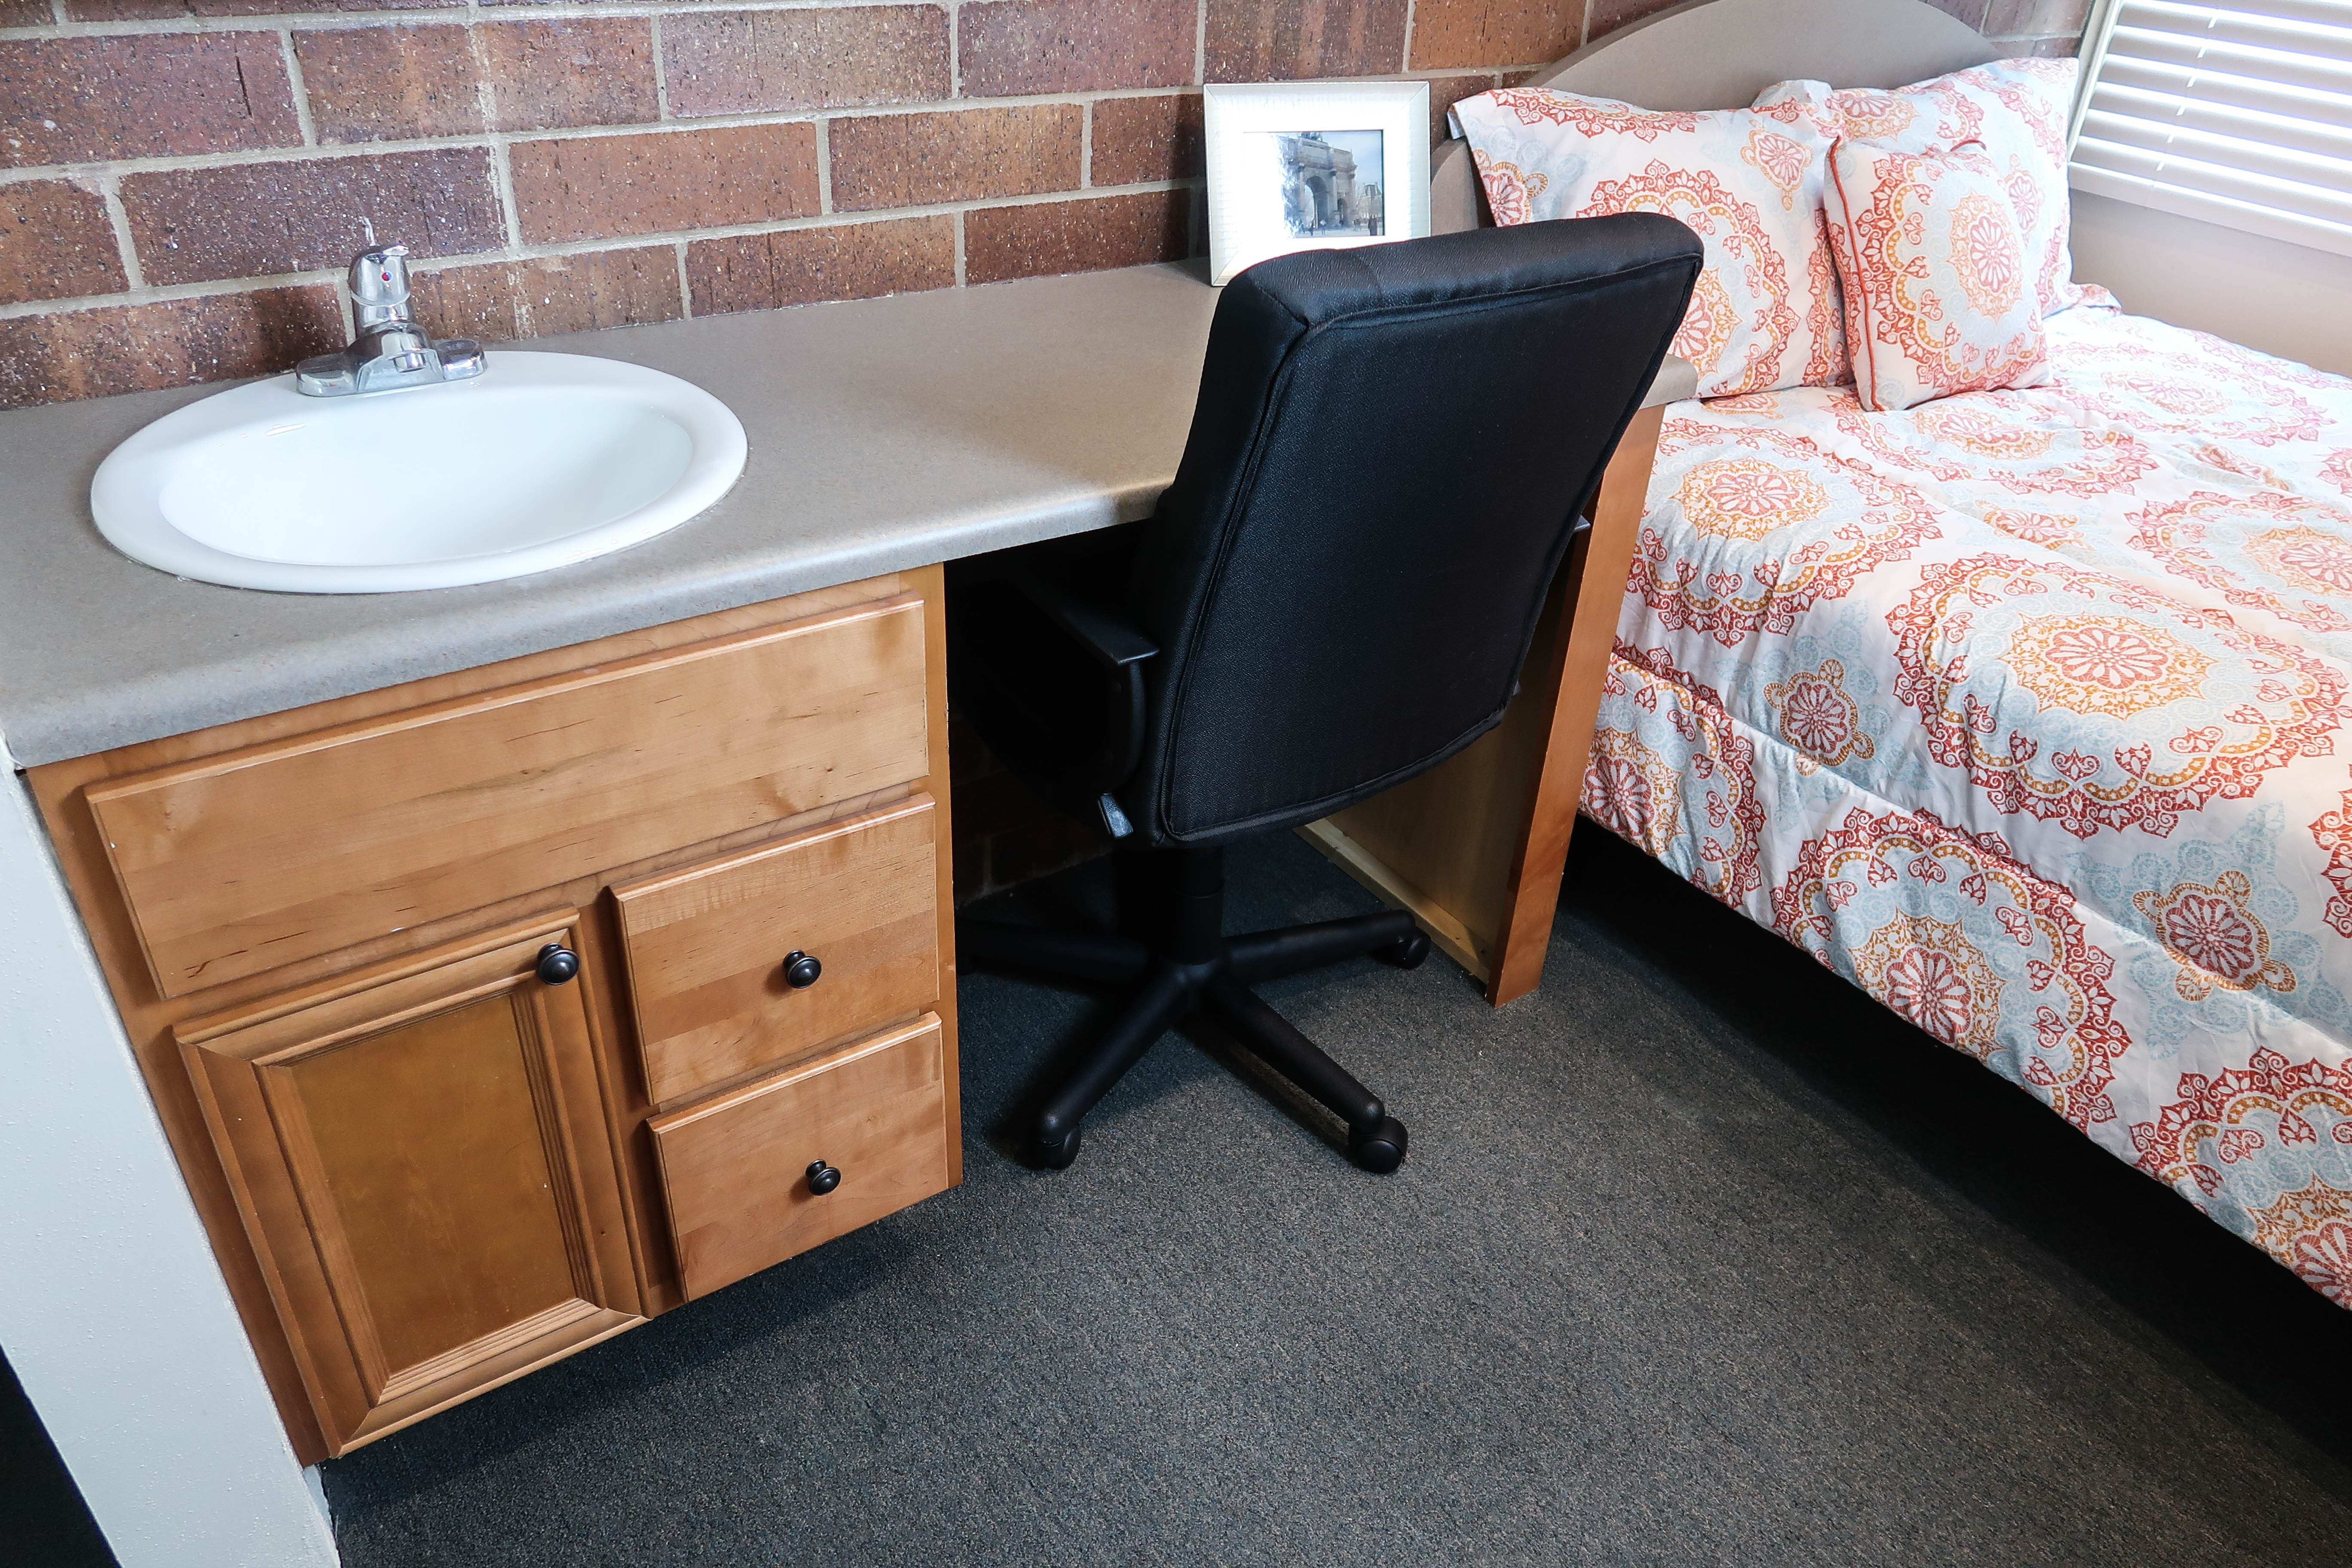 405 E White St University Of Illinois Apartment Two Bedroom Apartments Two Bedroom